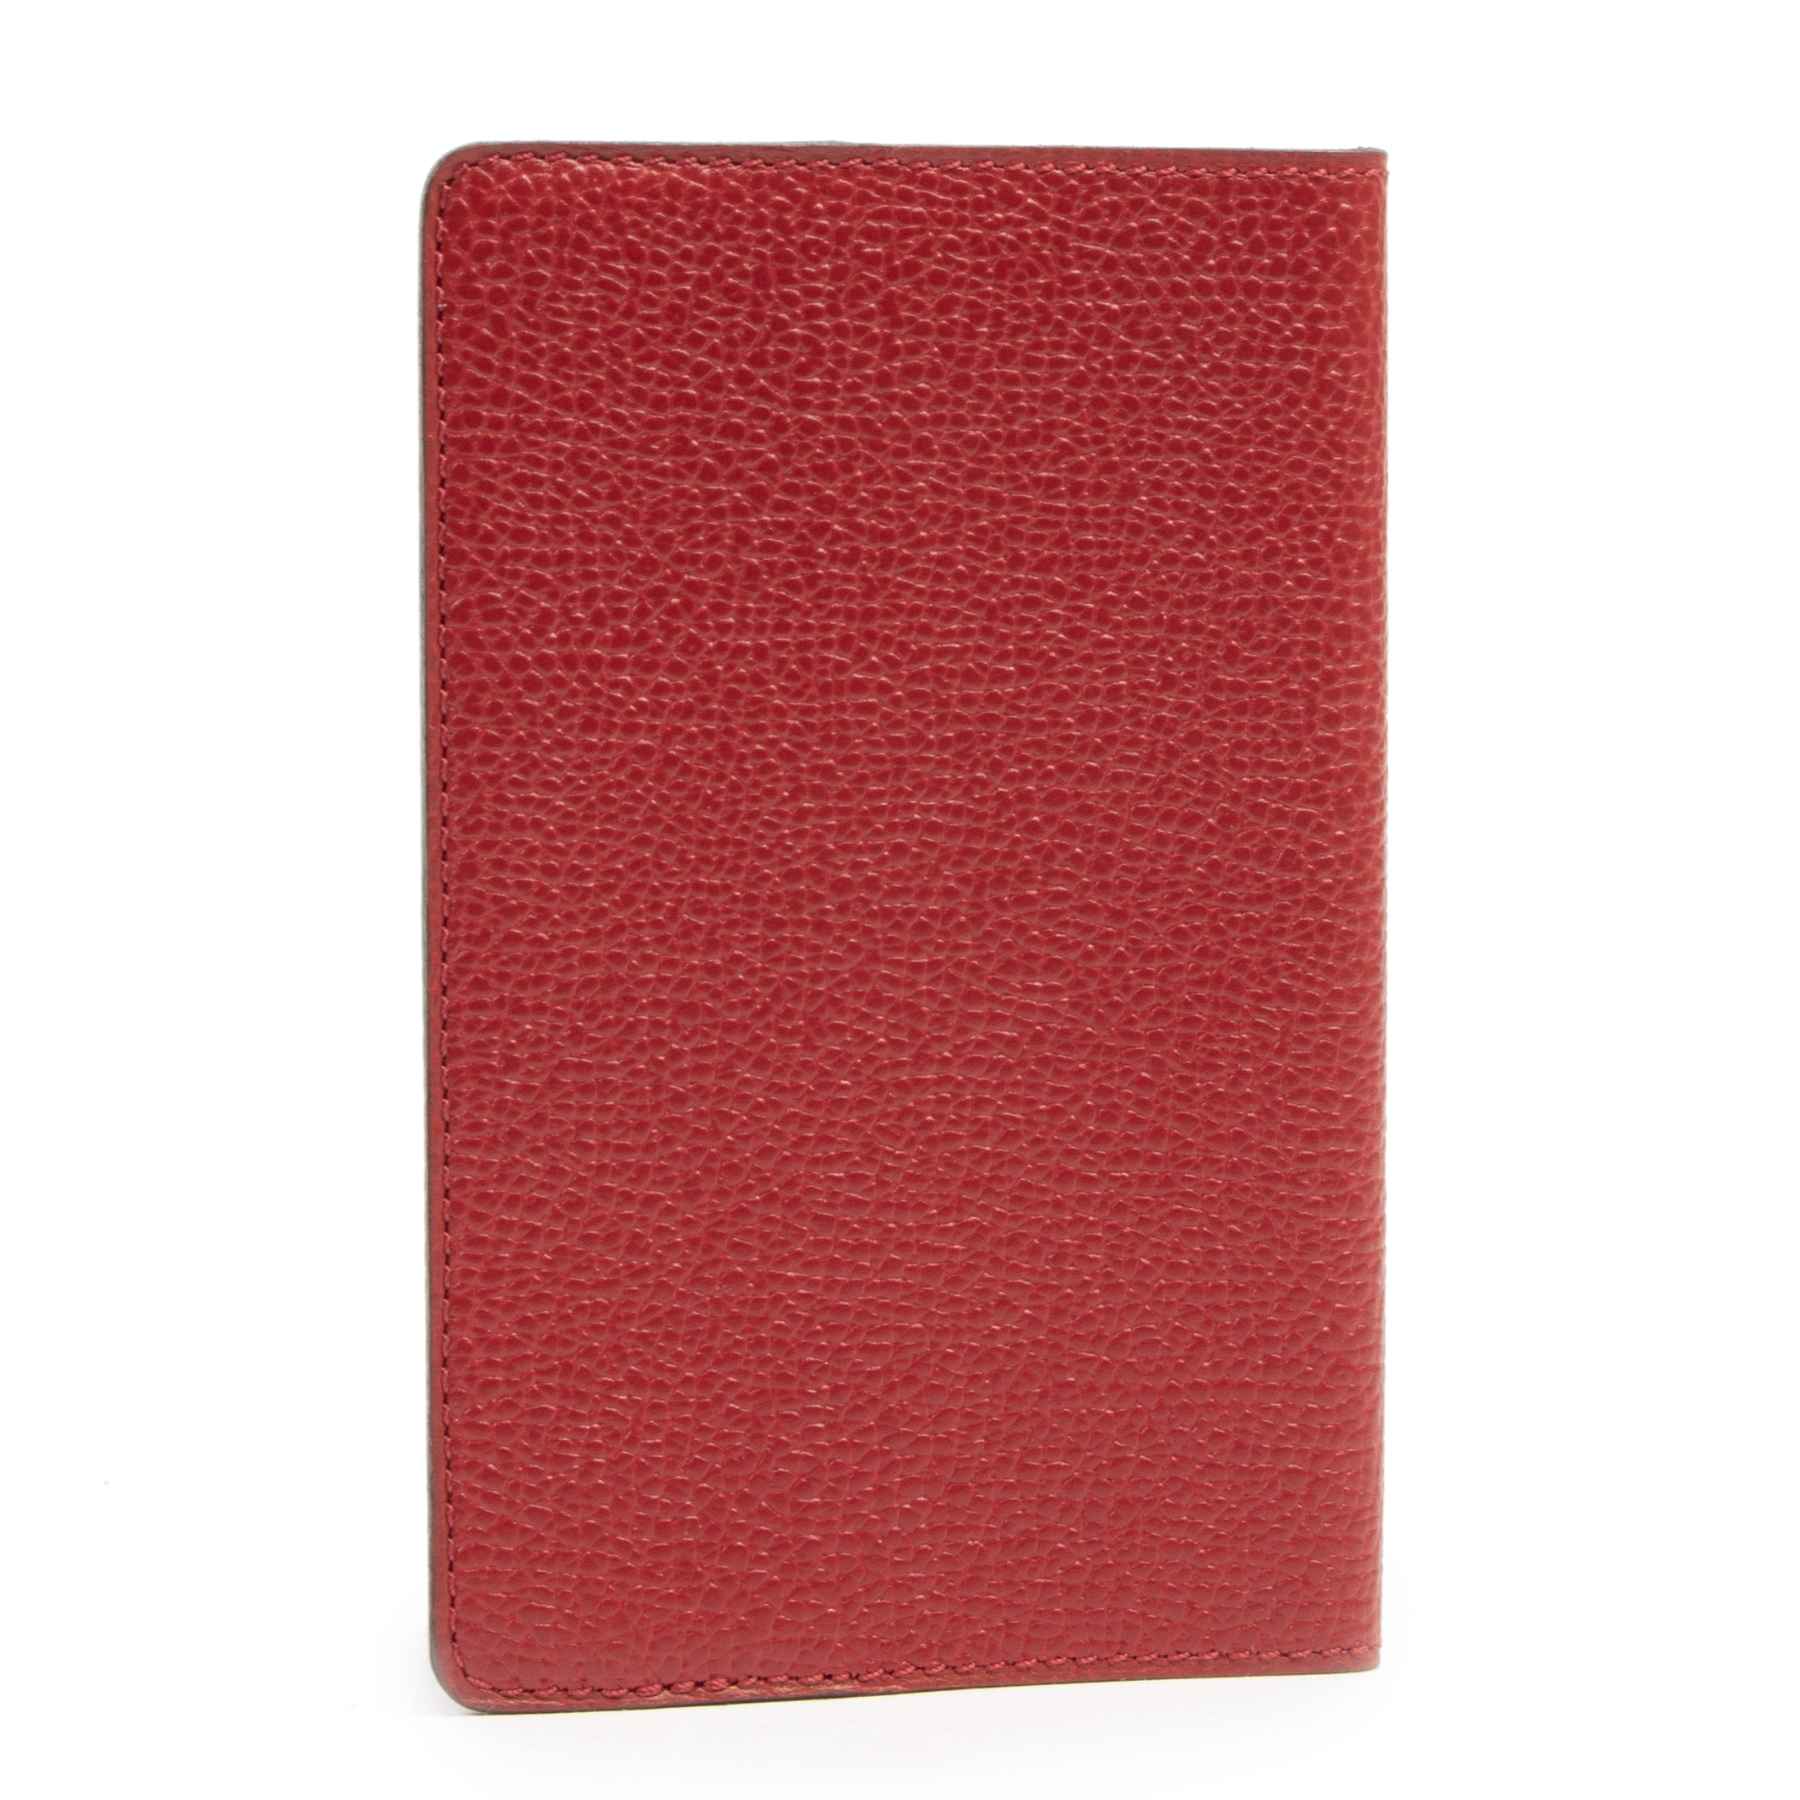 Authentieke tweedehands vintage Delvaux Red Leather Passport Holder koop online webshop LabelLOV